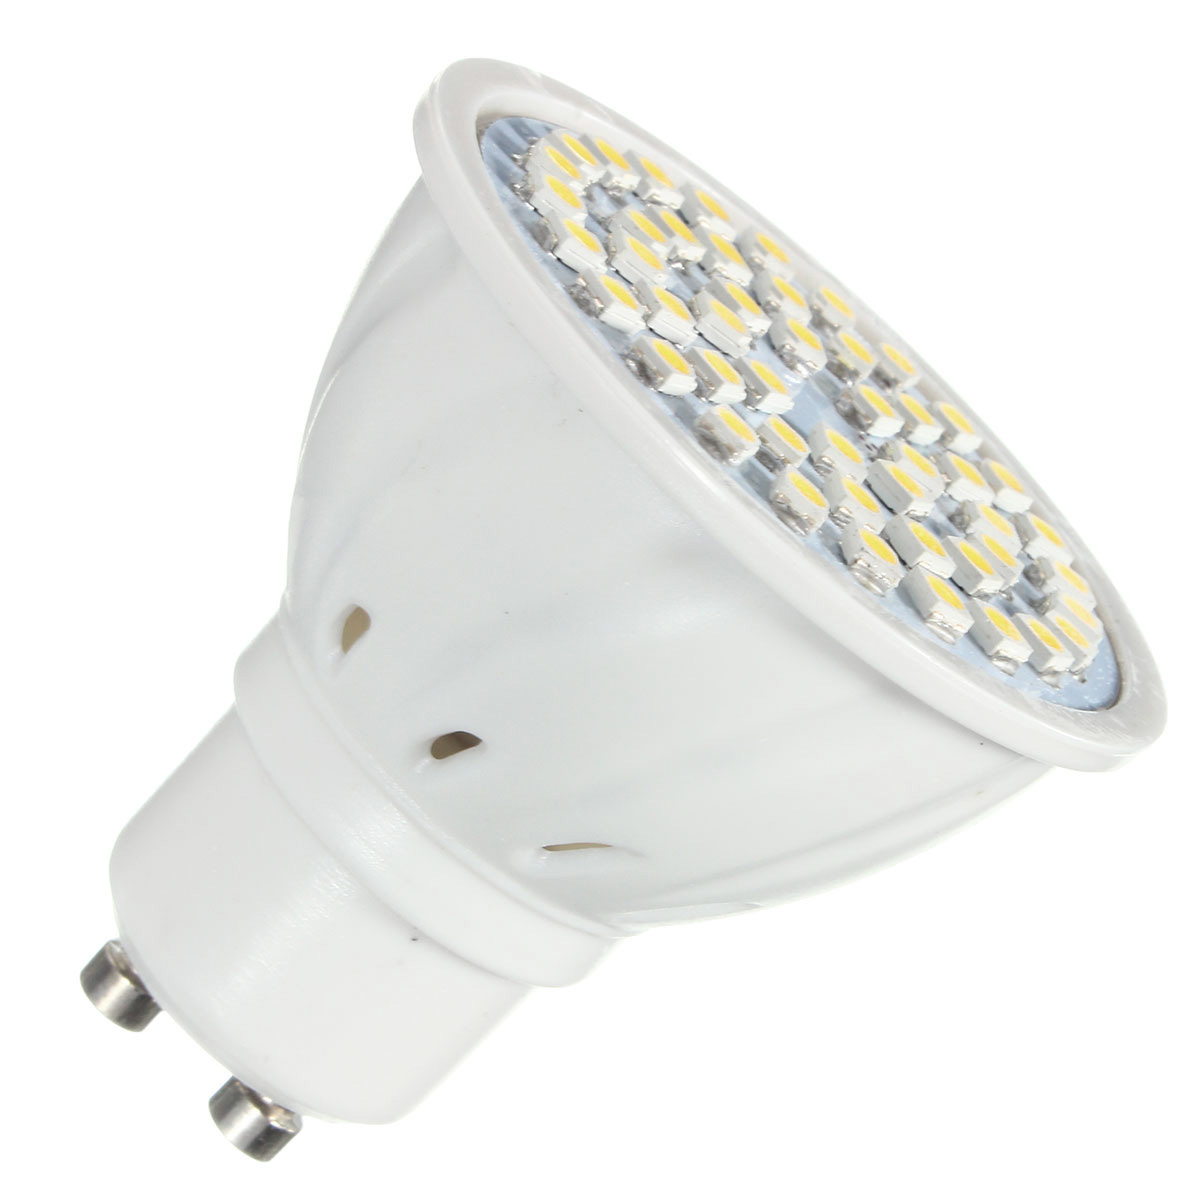 Gu10 C Zx E27 E14 Gu10 Mr16 Led 4w 48 Smd 3528 Led Pure White